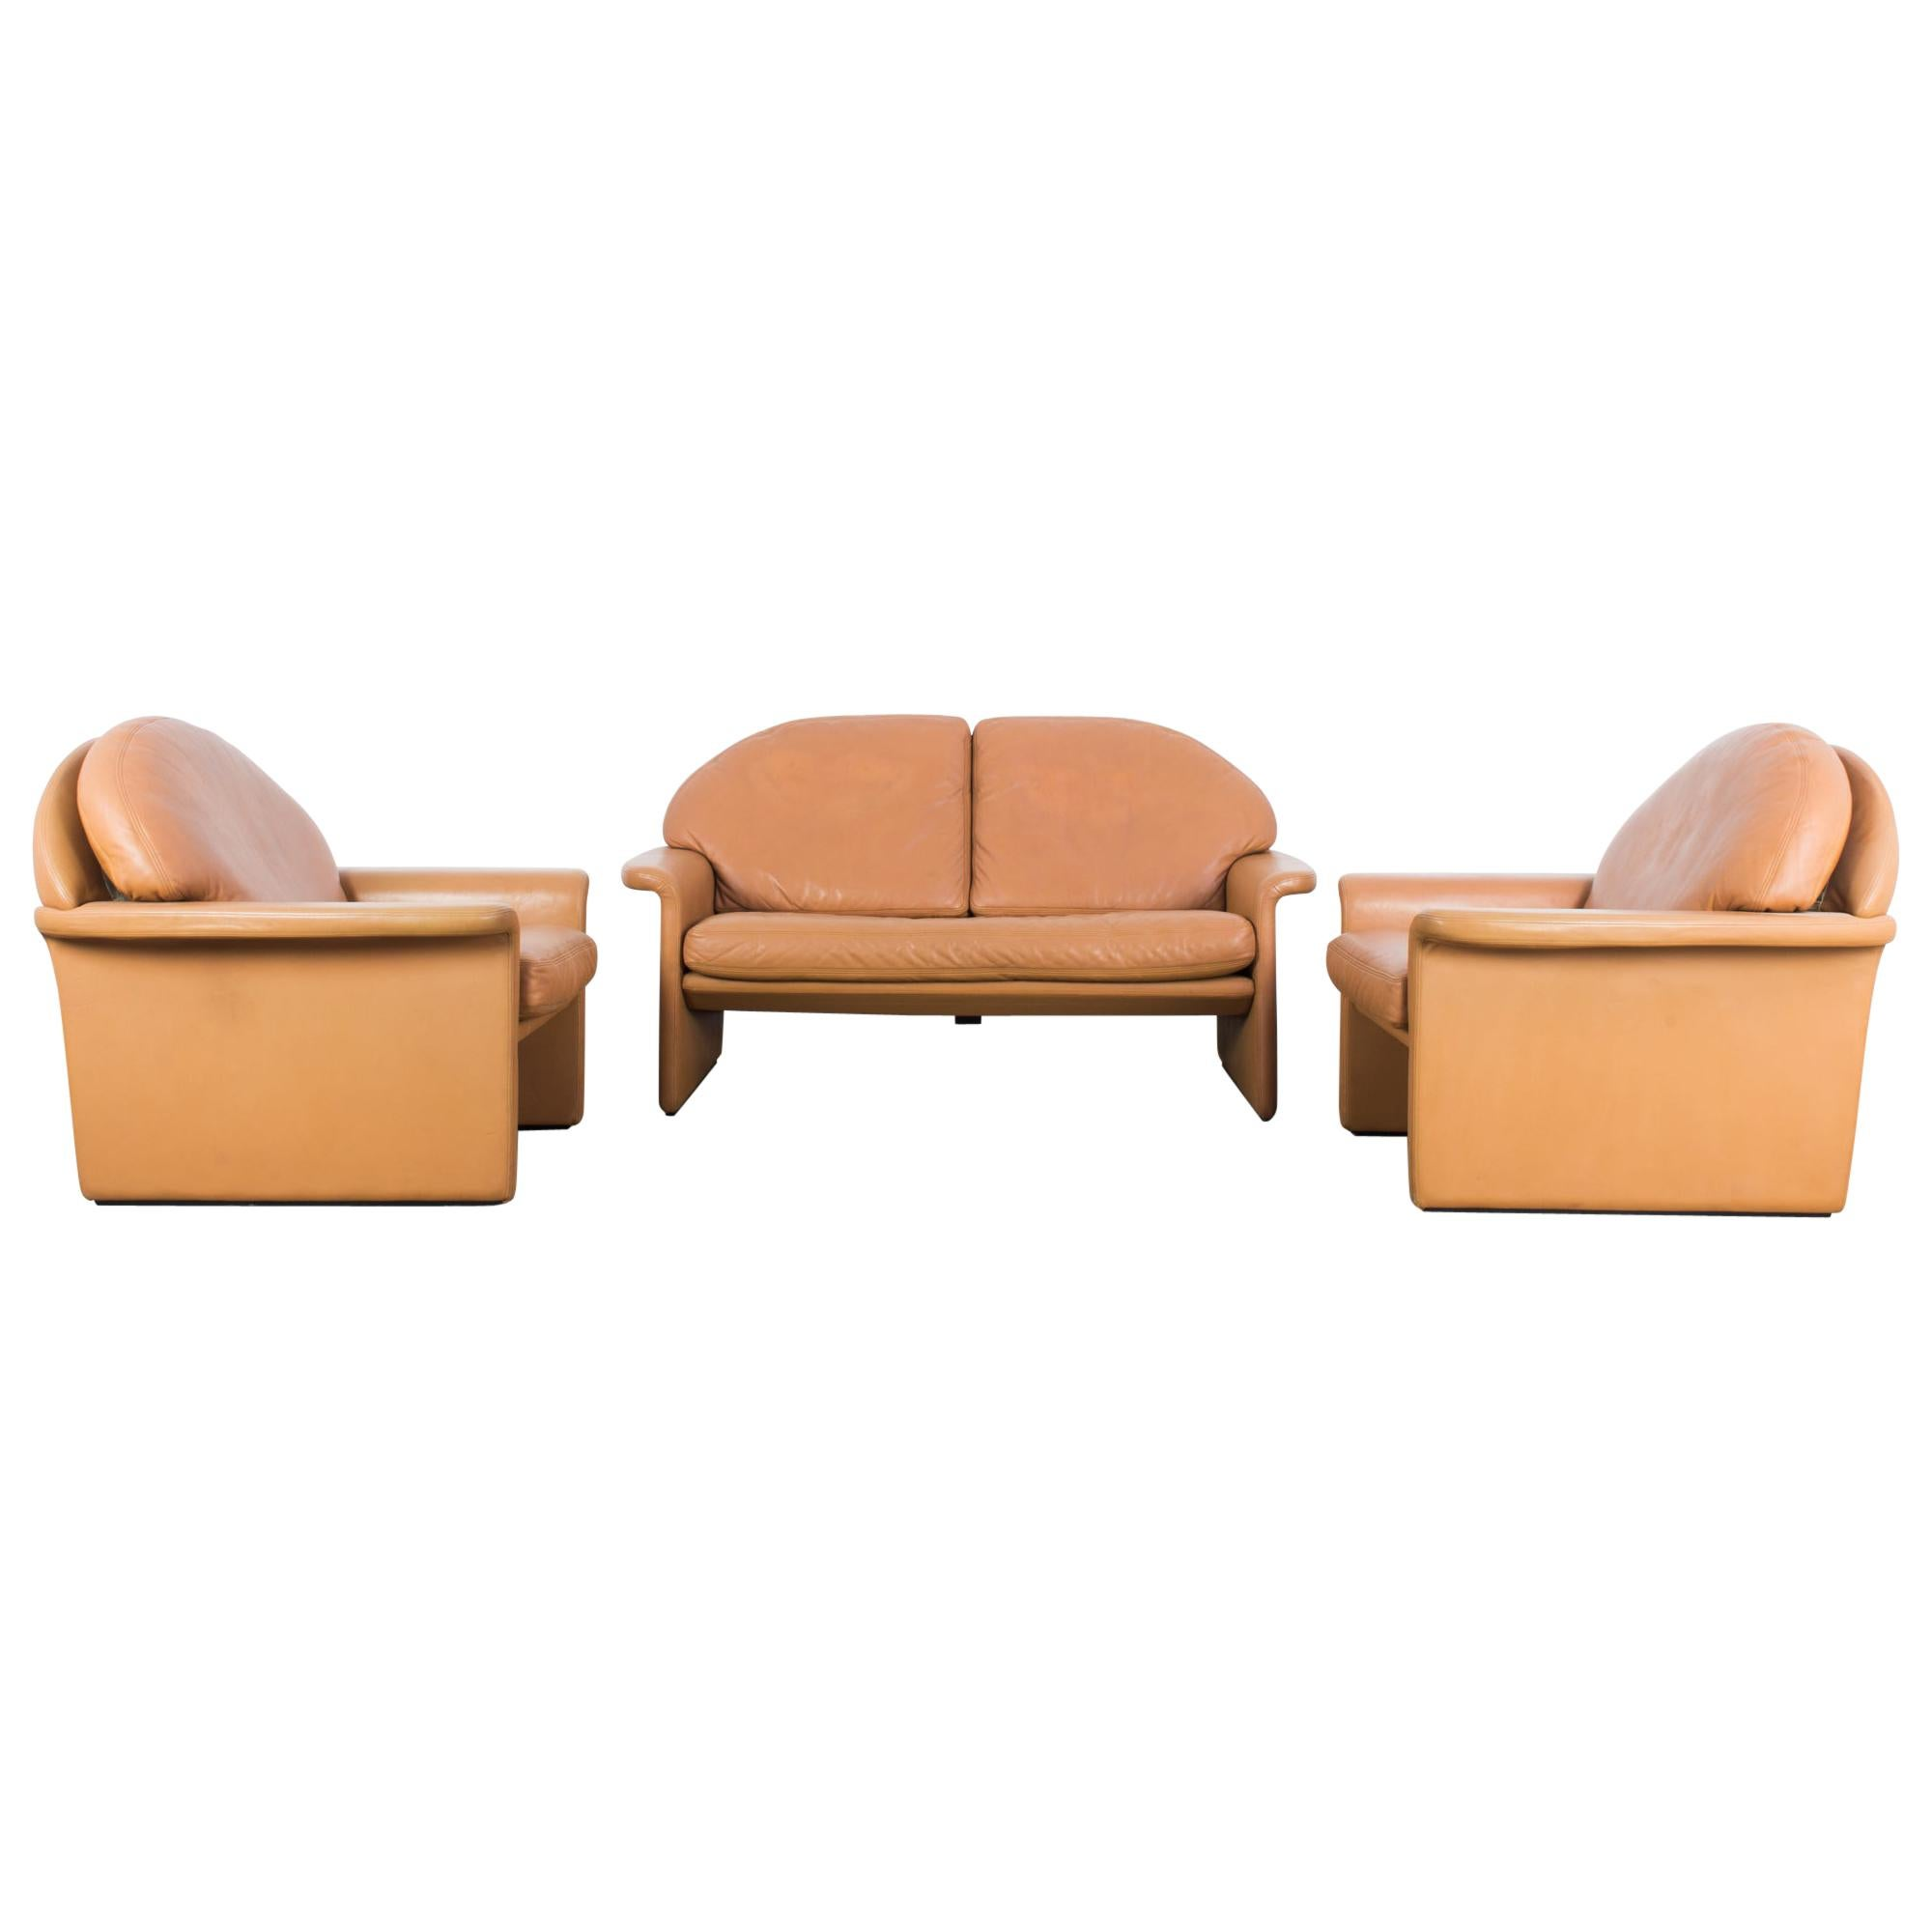 1970s De Sede Leather Sofa and Pair of Armchairs